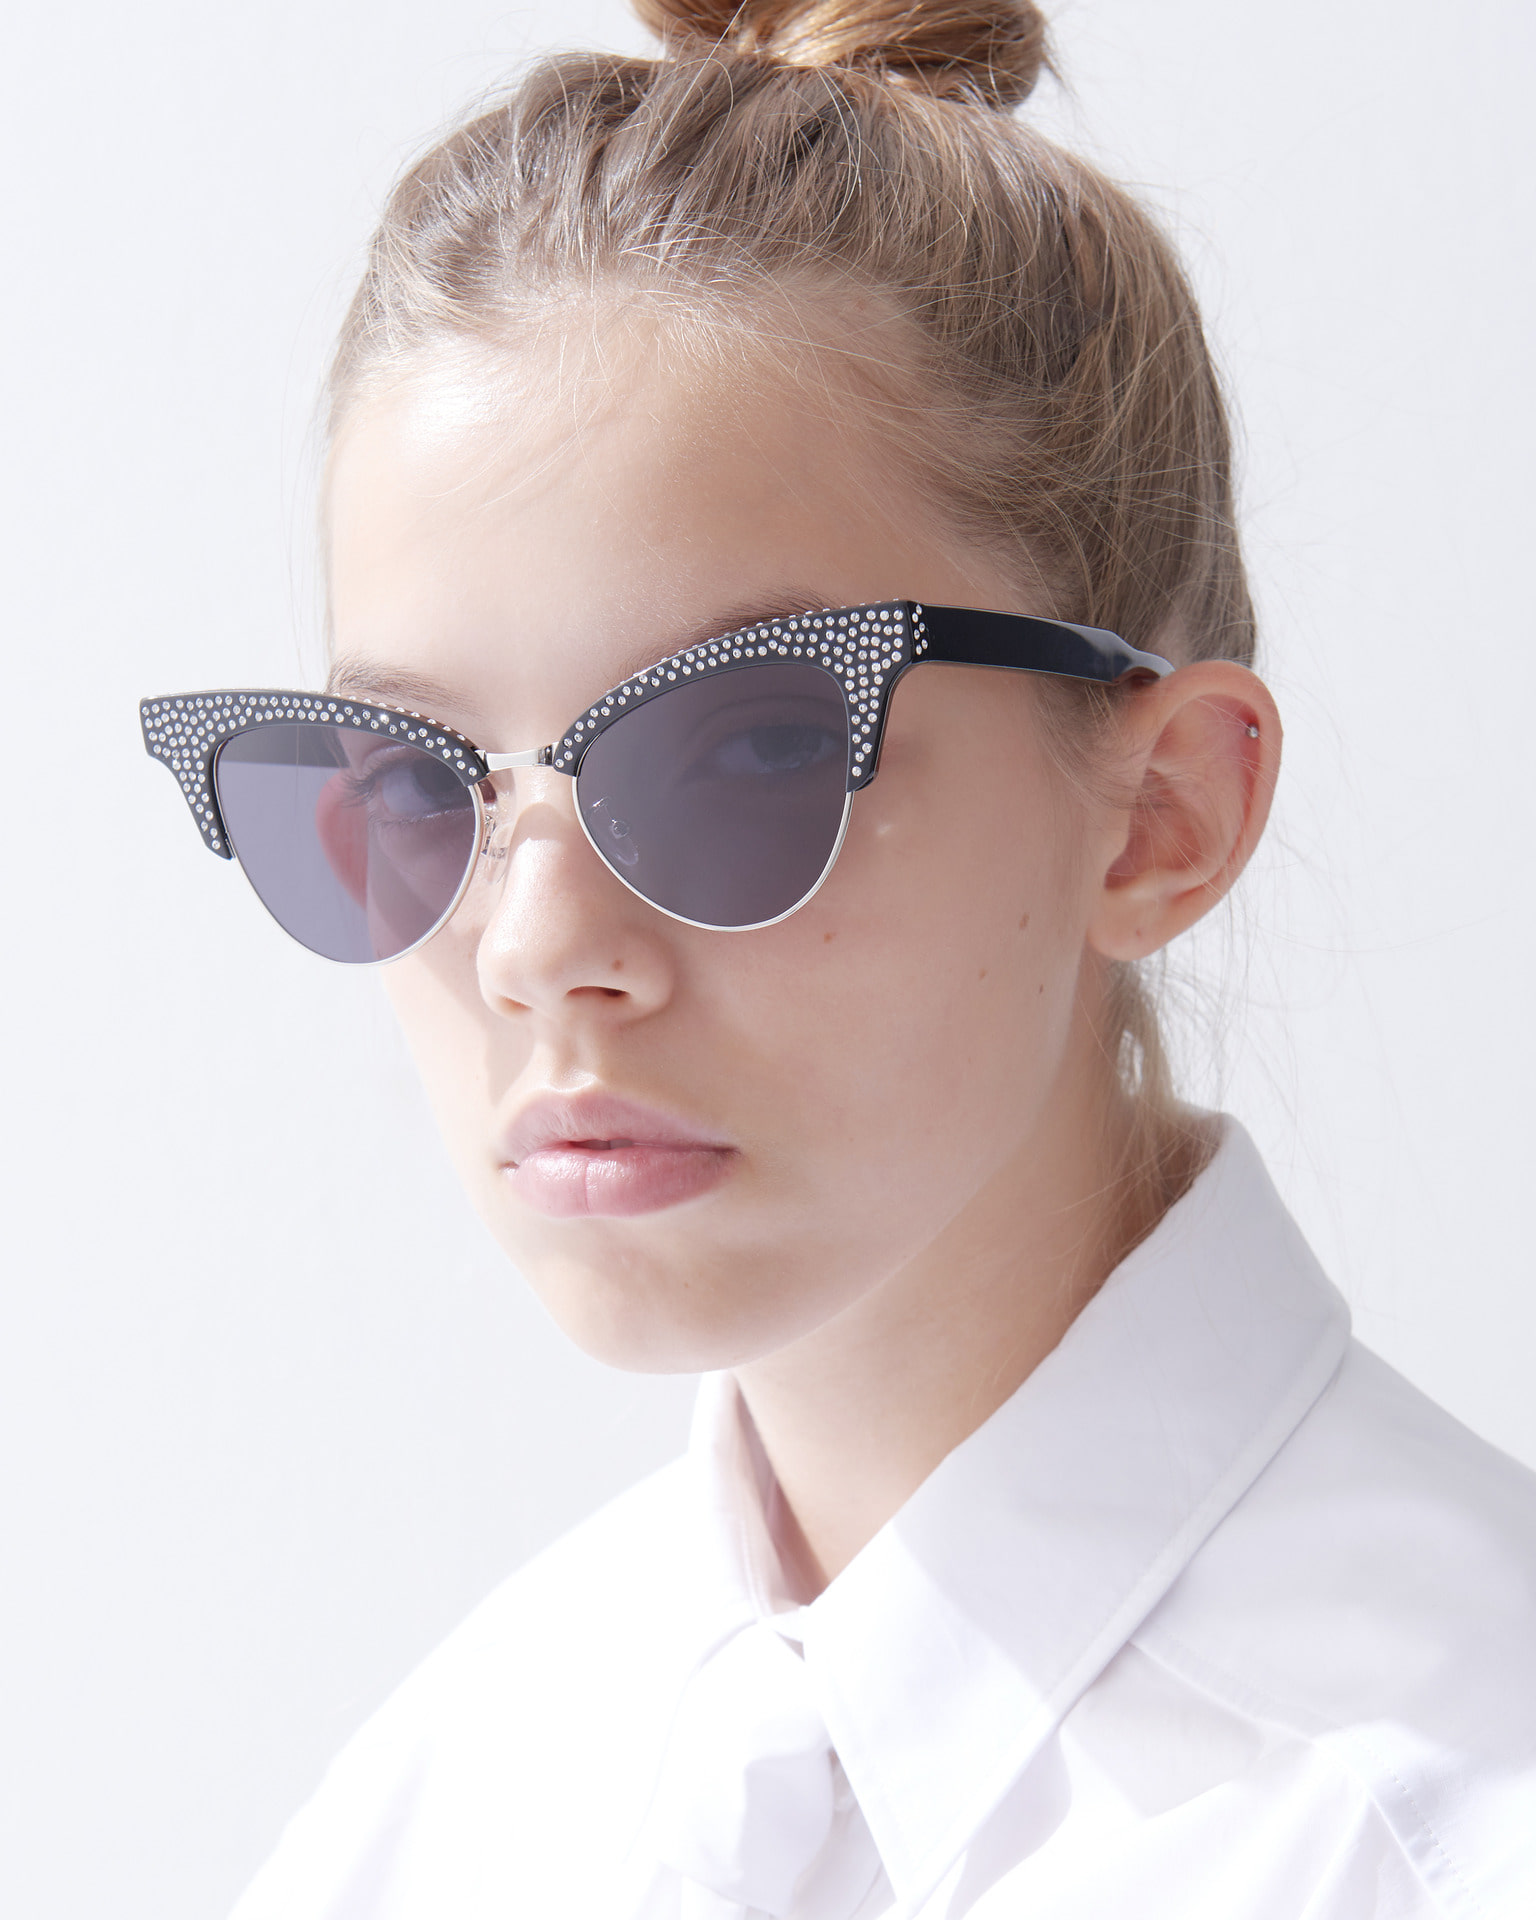 UNDER METAL SWAROVSKI SUNGLASSES